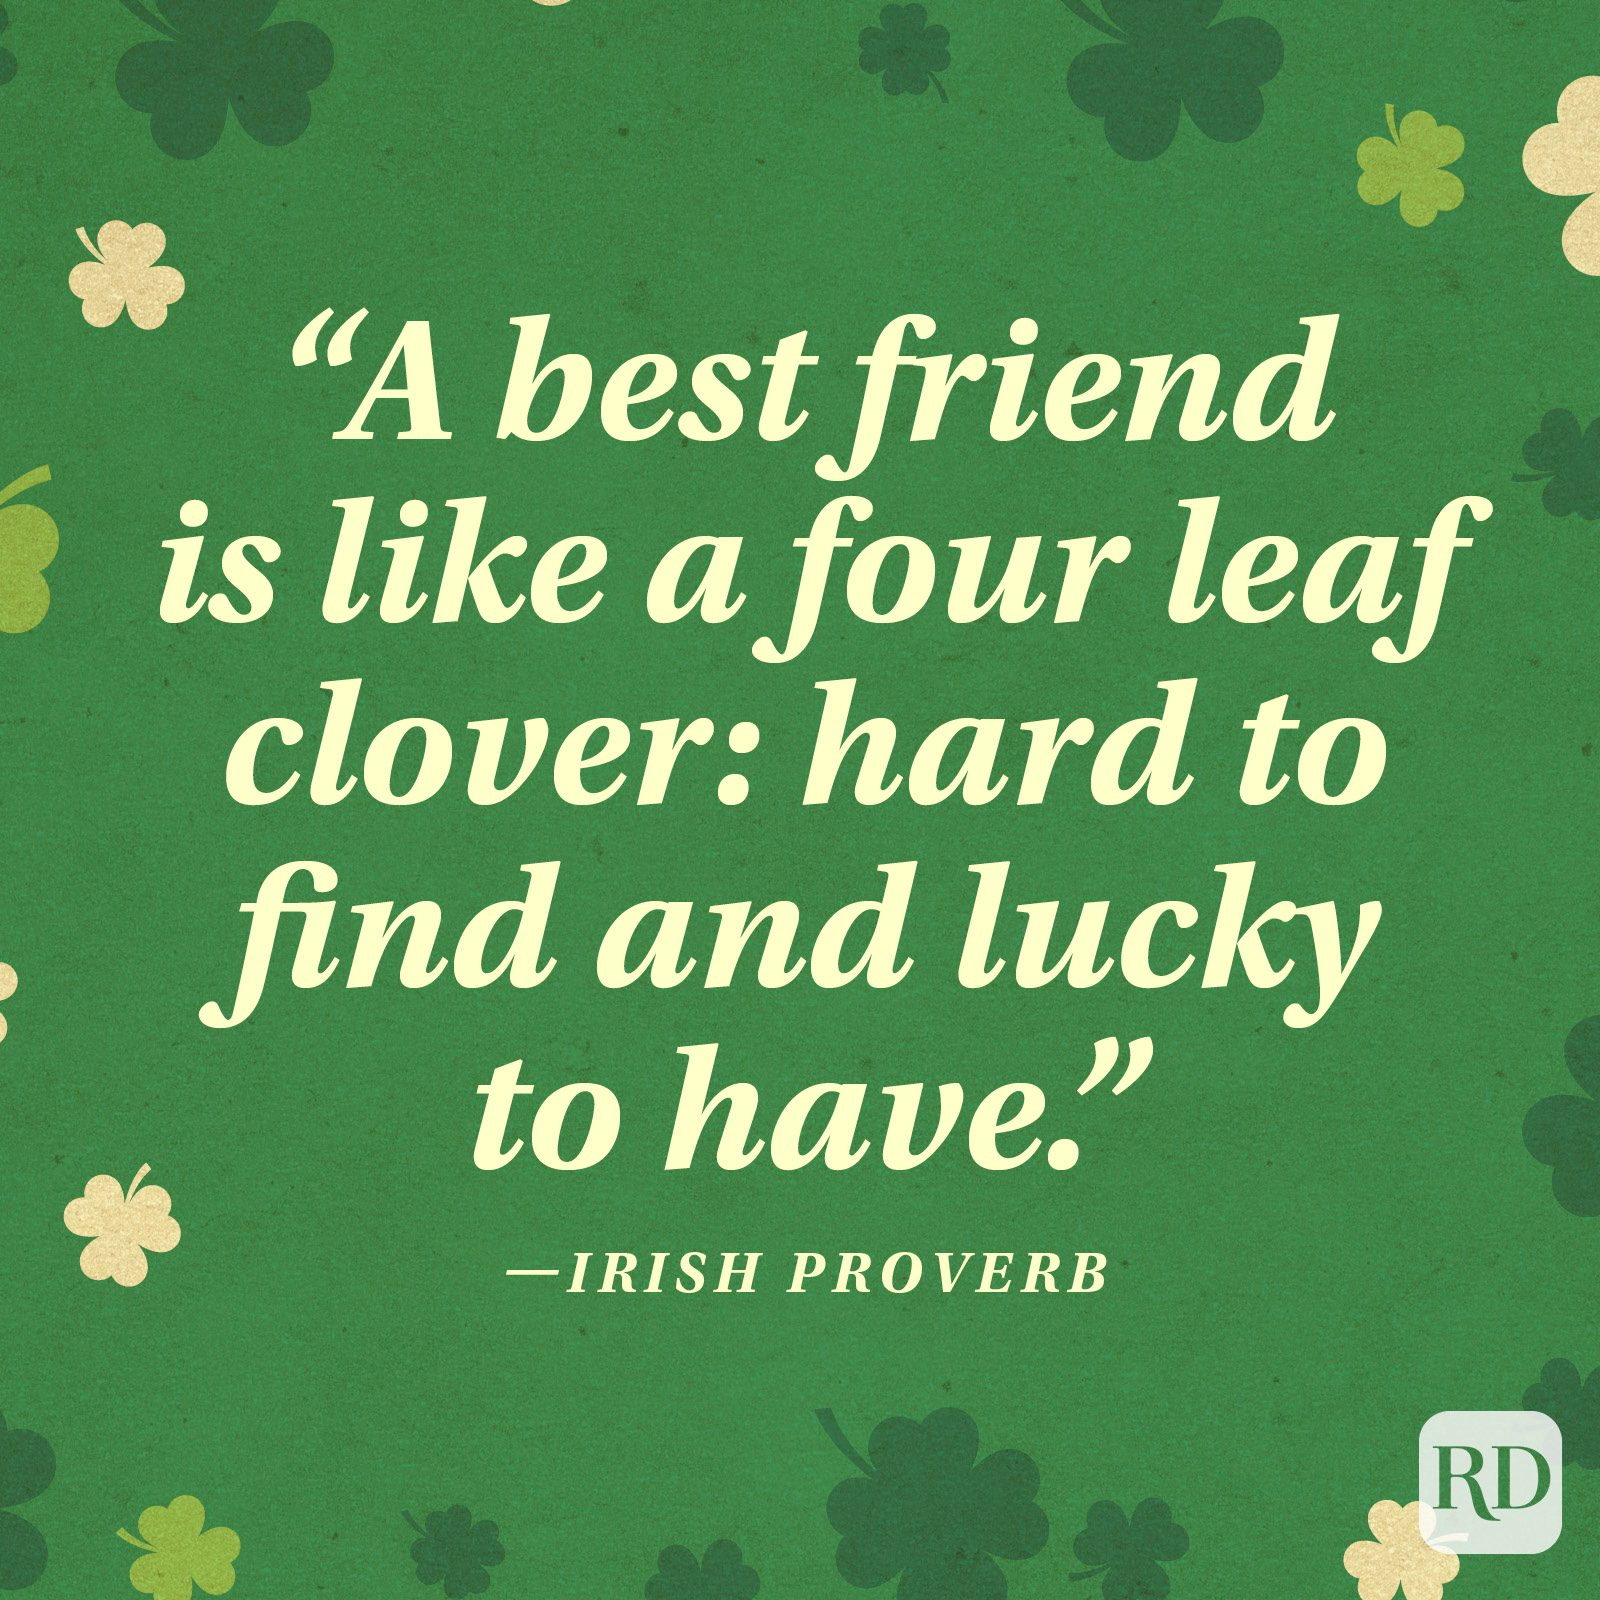 """A best friend is like a four leaf clover: hard to find and lucky to have."" —Irish proverb"